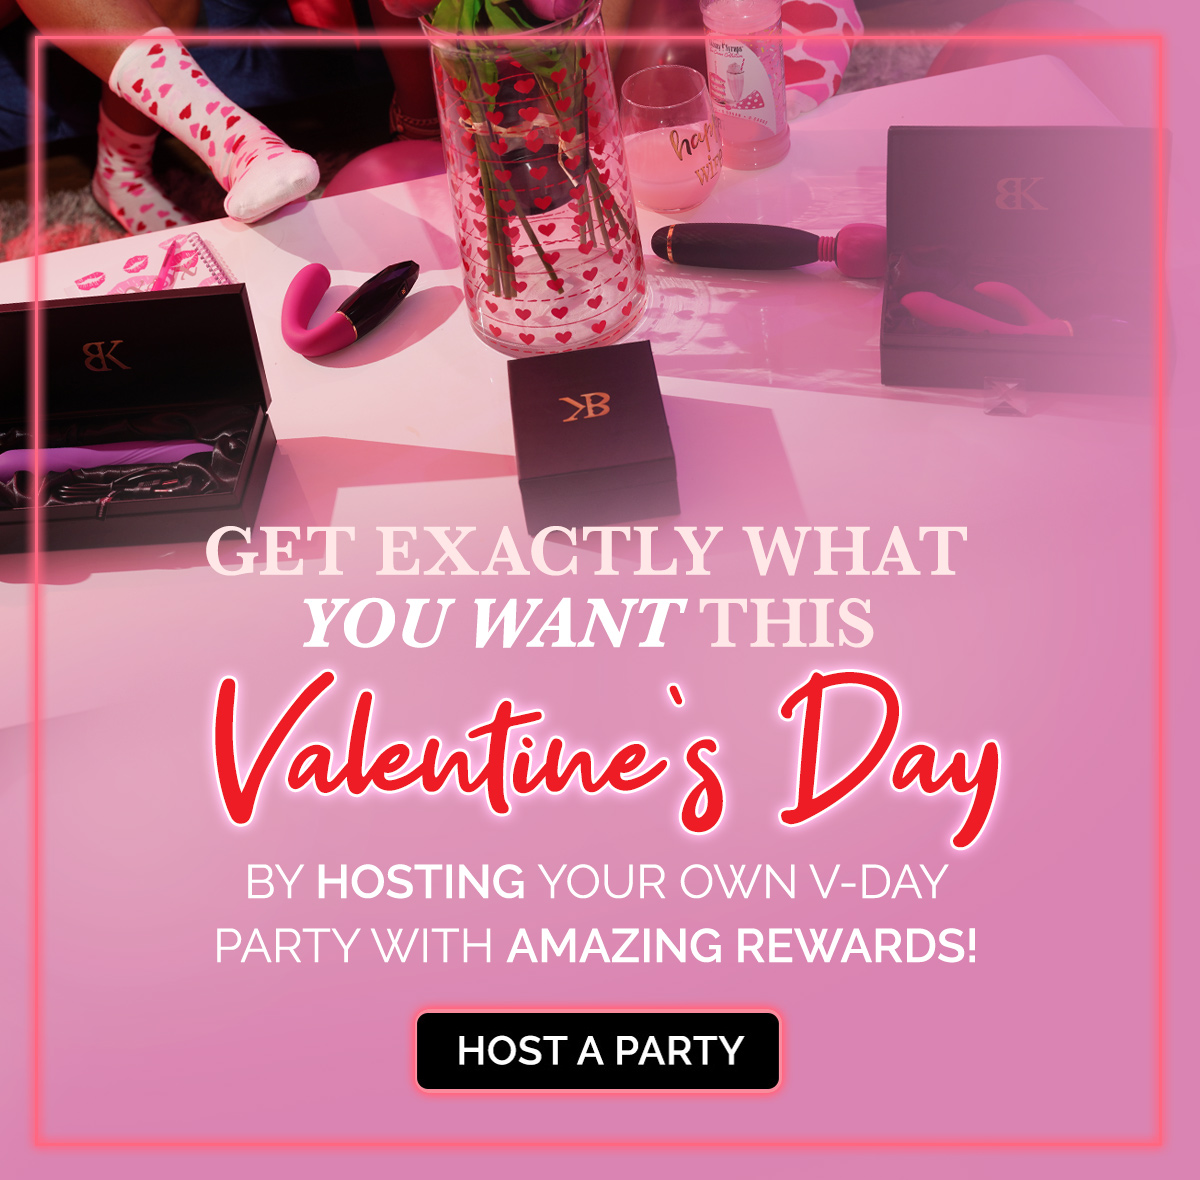 Get Exactly What you Want This Valentine's Day when you Host a Party